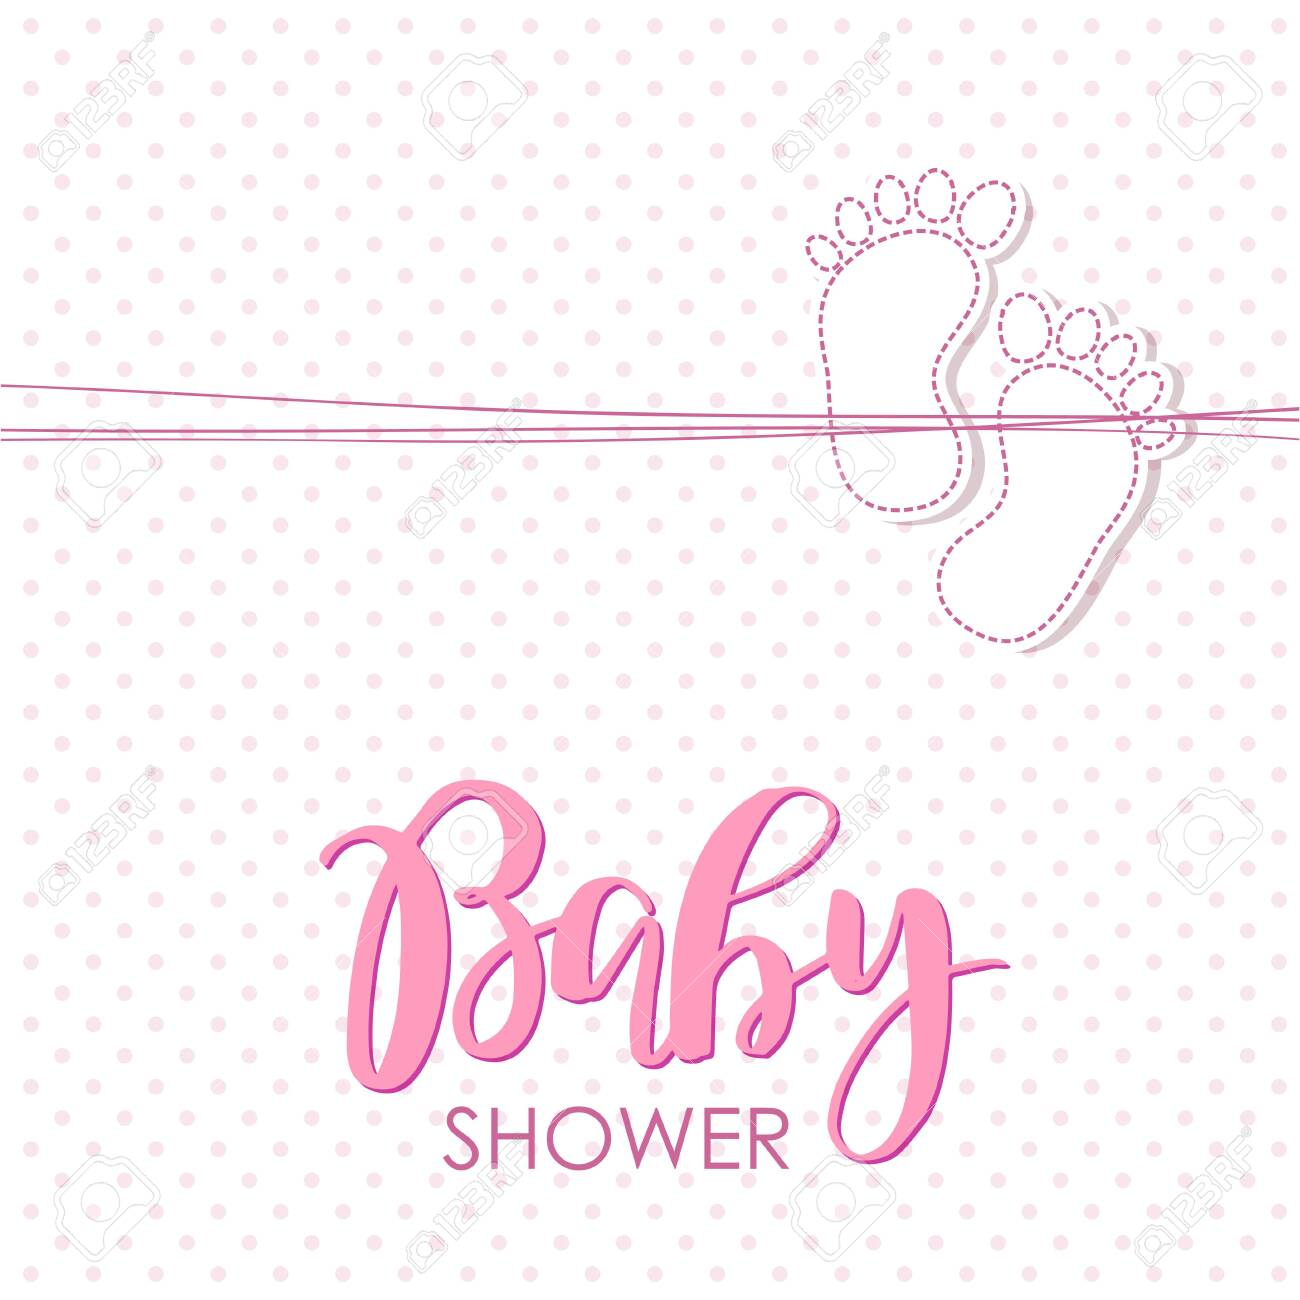 Baby Arrival Card With Small Foot Print Design Template For